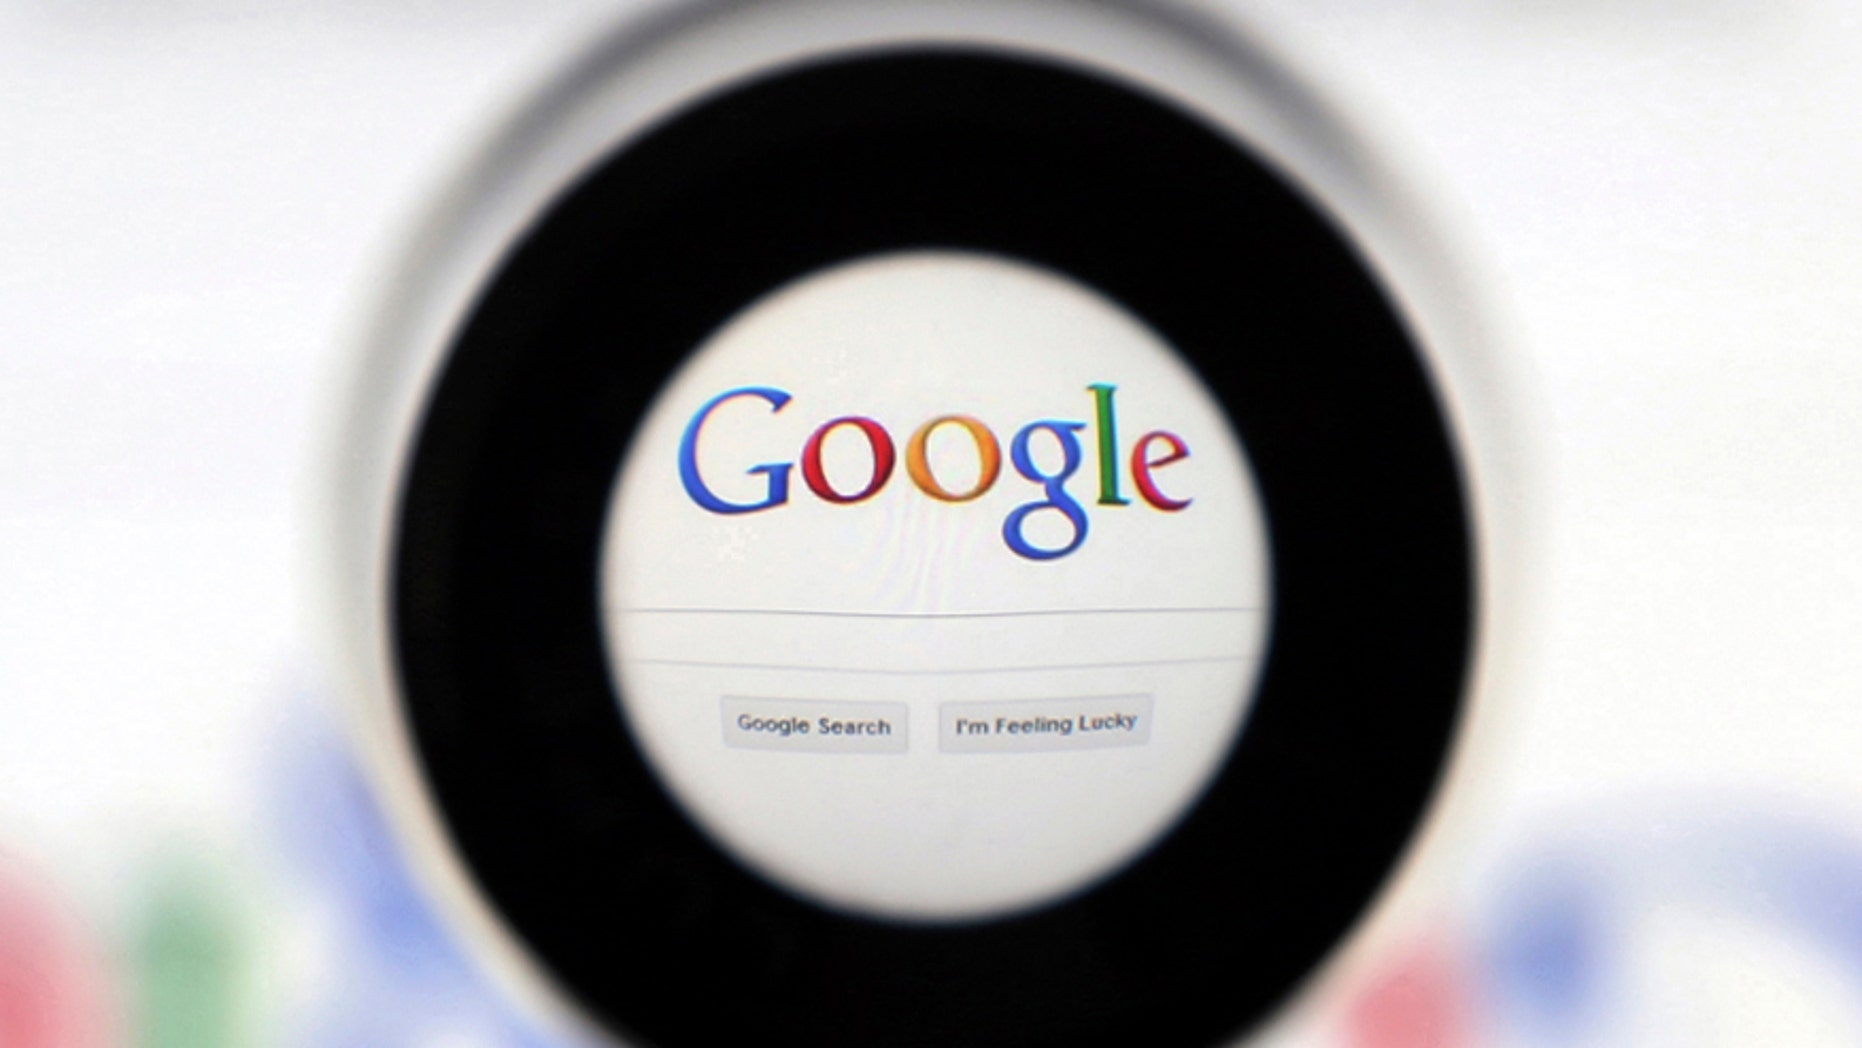 File photo - A Google search page is seen through a magnifying glass in this photo illustration taken in Brussels May 30, 2014. (REUTERS/Francois Lenoir)